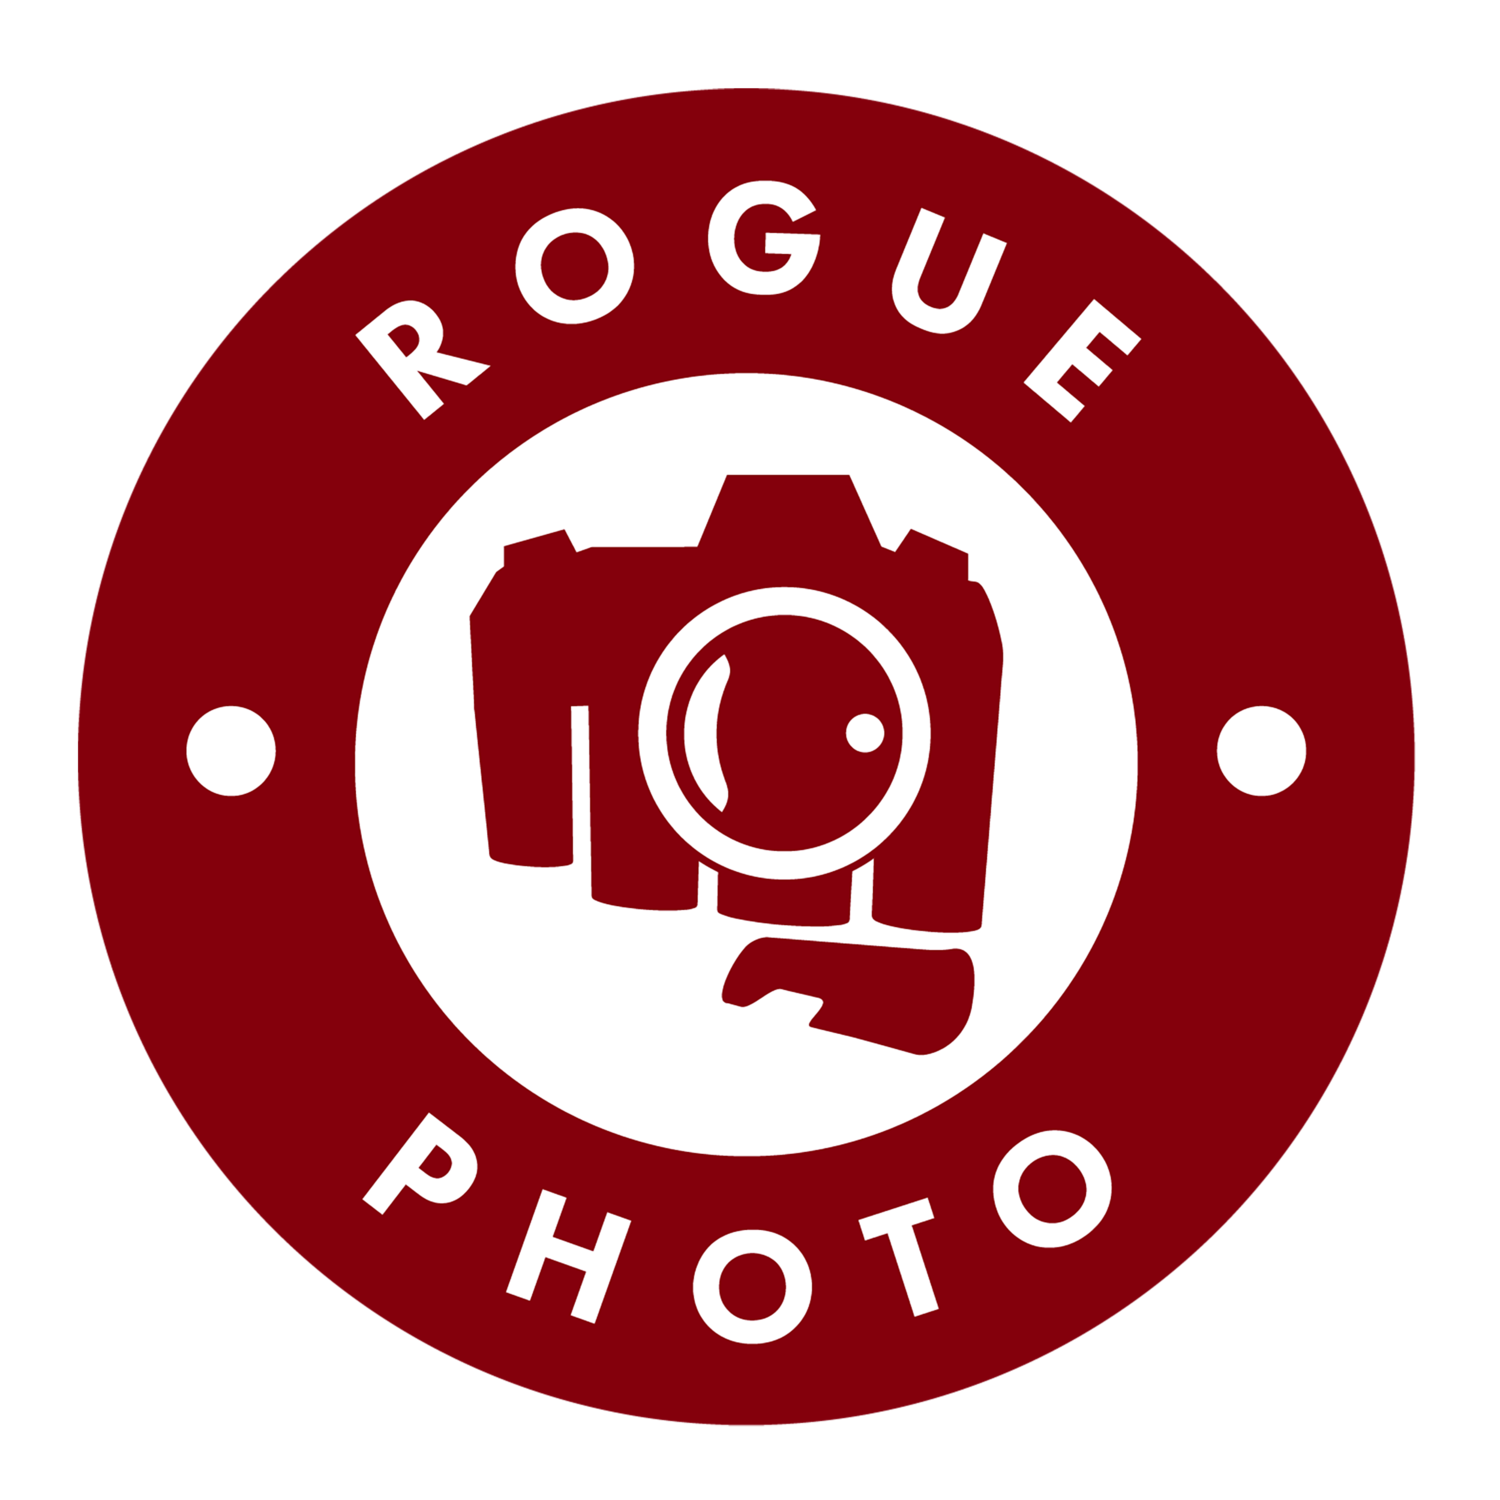 Rogue Photo